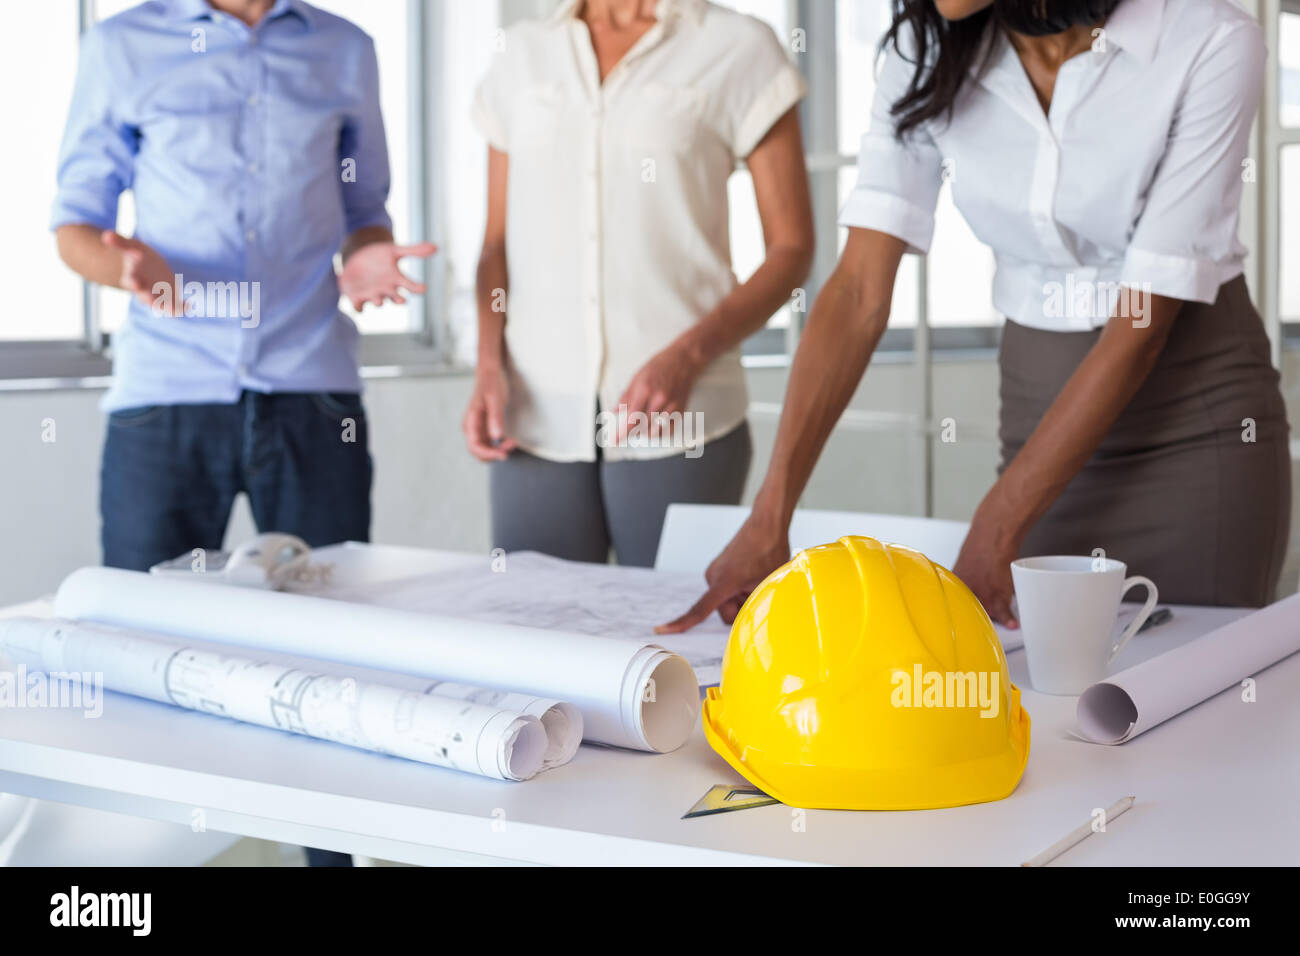 Architects looking at important blueprints - Stock Image